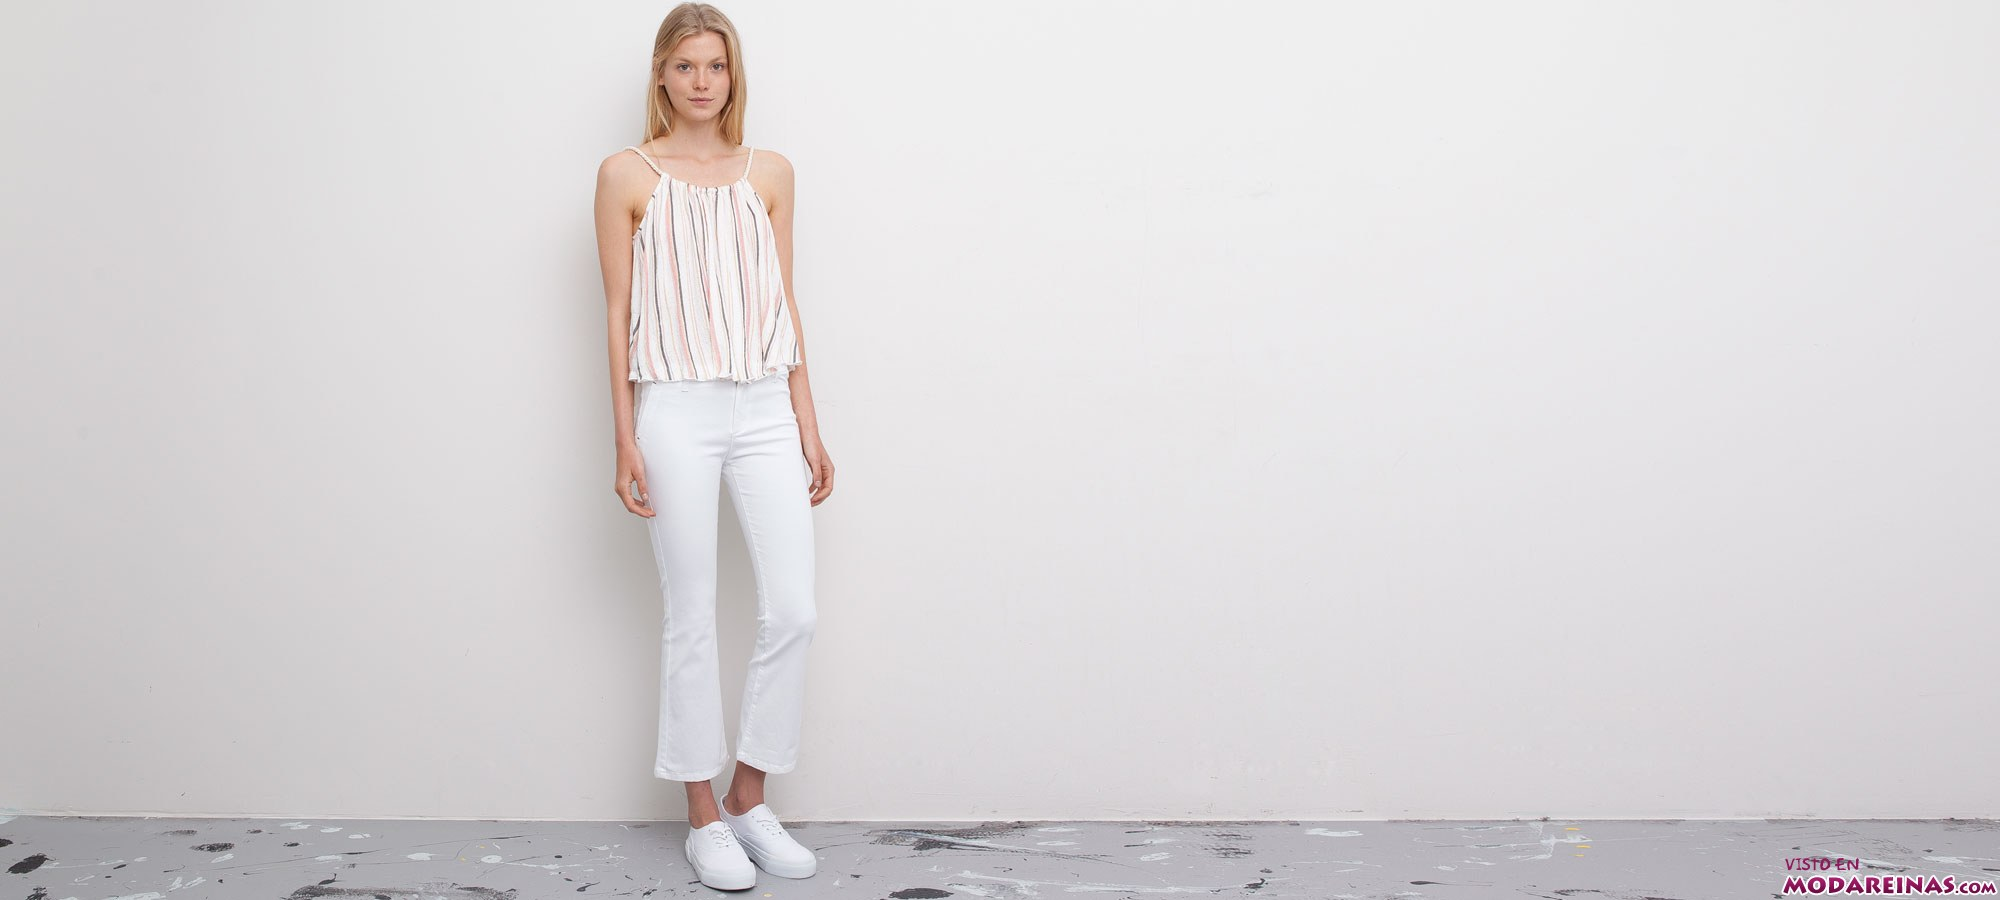 top de rayas y pantalon blanco